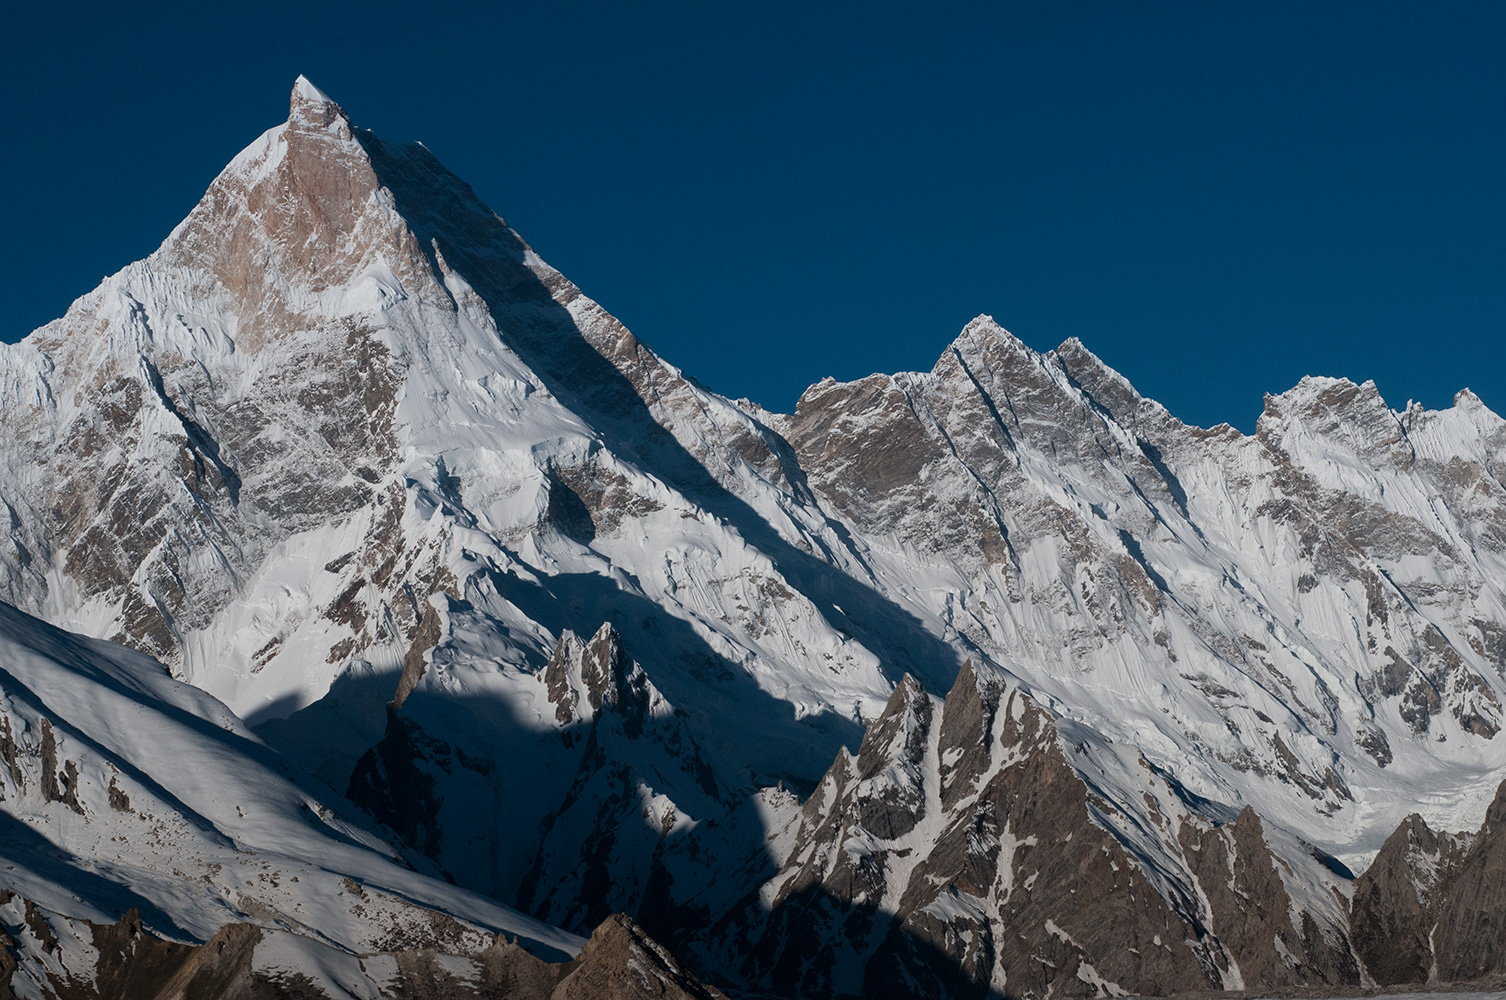 Morning light, from Shokspong on the Baltoro glacier. This is the NW face. The mountain has only ever had four ascents, and none from this side. The first ascent was from the SE in 1960, by Willi Unsoeld, George Bell, Nicholas Clinch and Jawed Akhter. In 1981 a Polish team climbed the lower SW summit, also from the SE and were lucky to get off the mountain alive. The main summit did not get a second ascent until 1983 when a Japanese expedition climbed the same route as the Americans in 1960. In 1985 another Japanese expedition put ten members on the summit via the N ridge, followed the very next day by an Austrian team who had made the first ascent of the NW face. It is now 34 years since anyone stood on the summit.